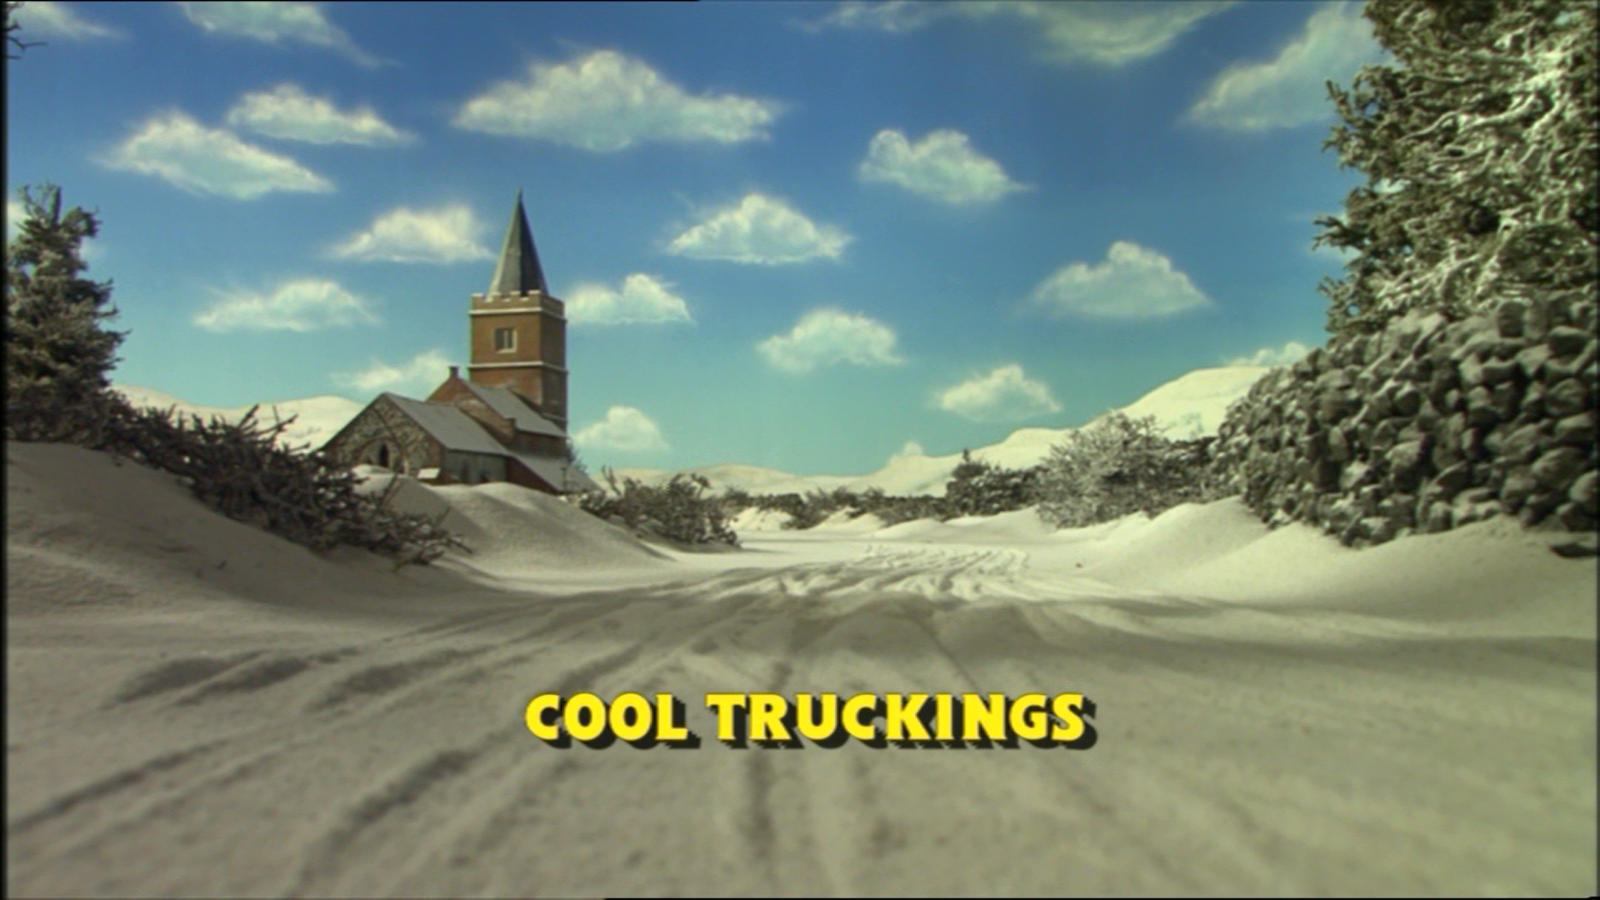 File:CoolTruckingsUStitlecard.png